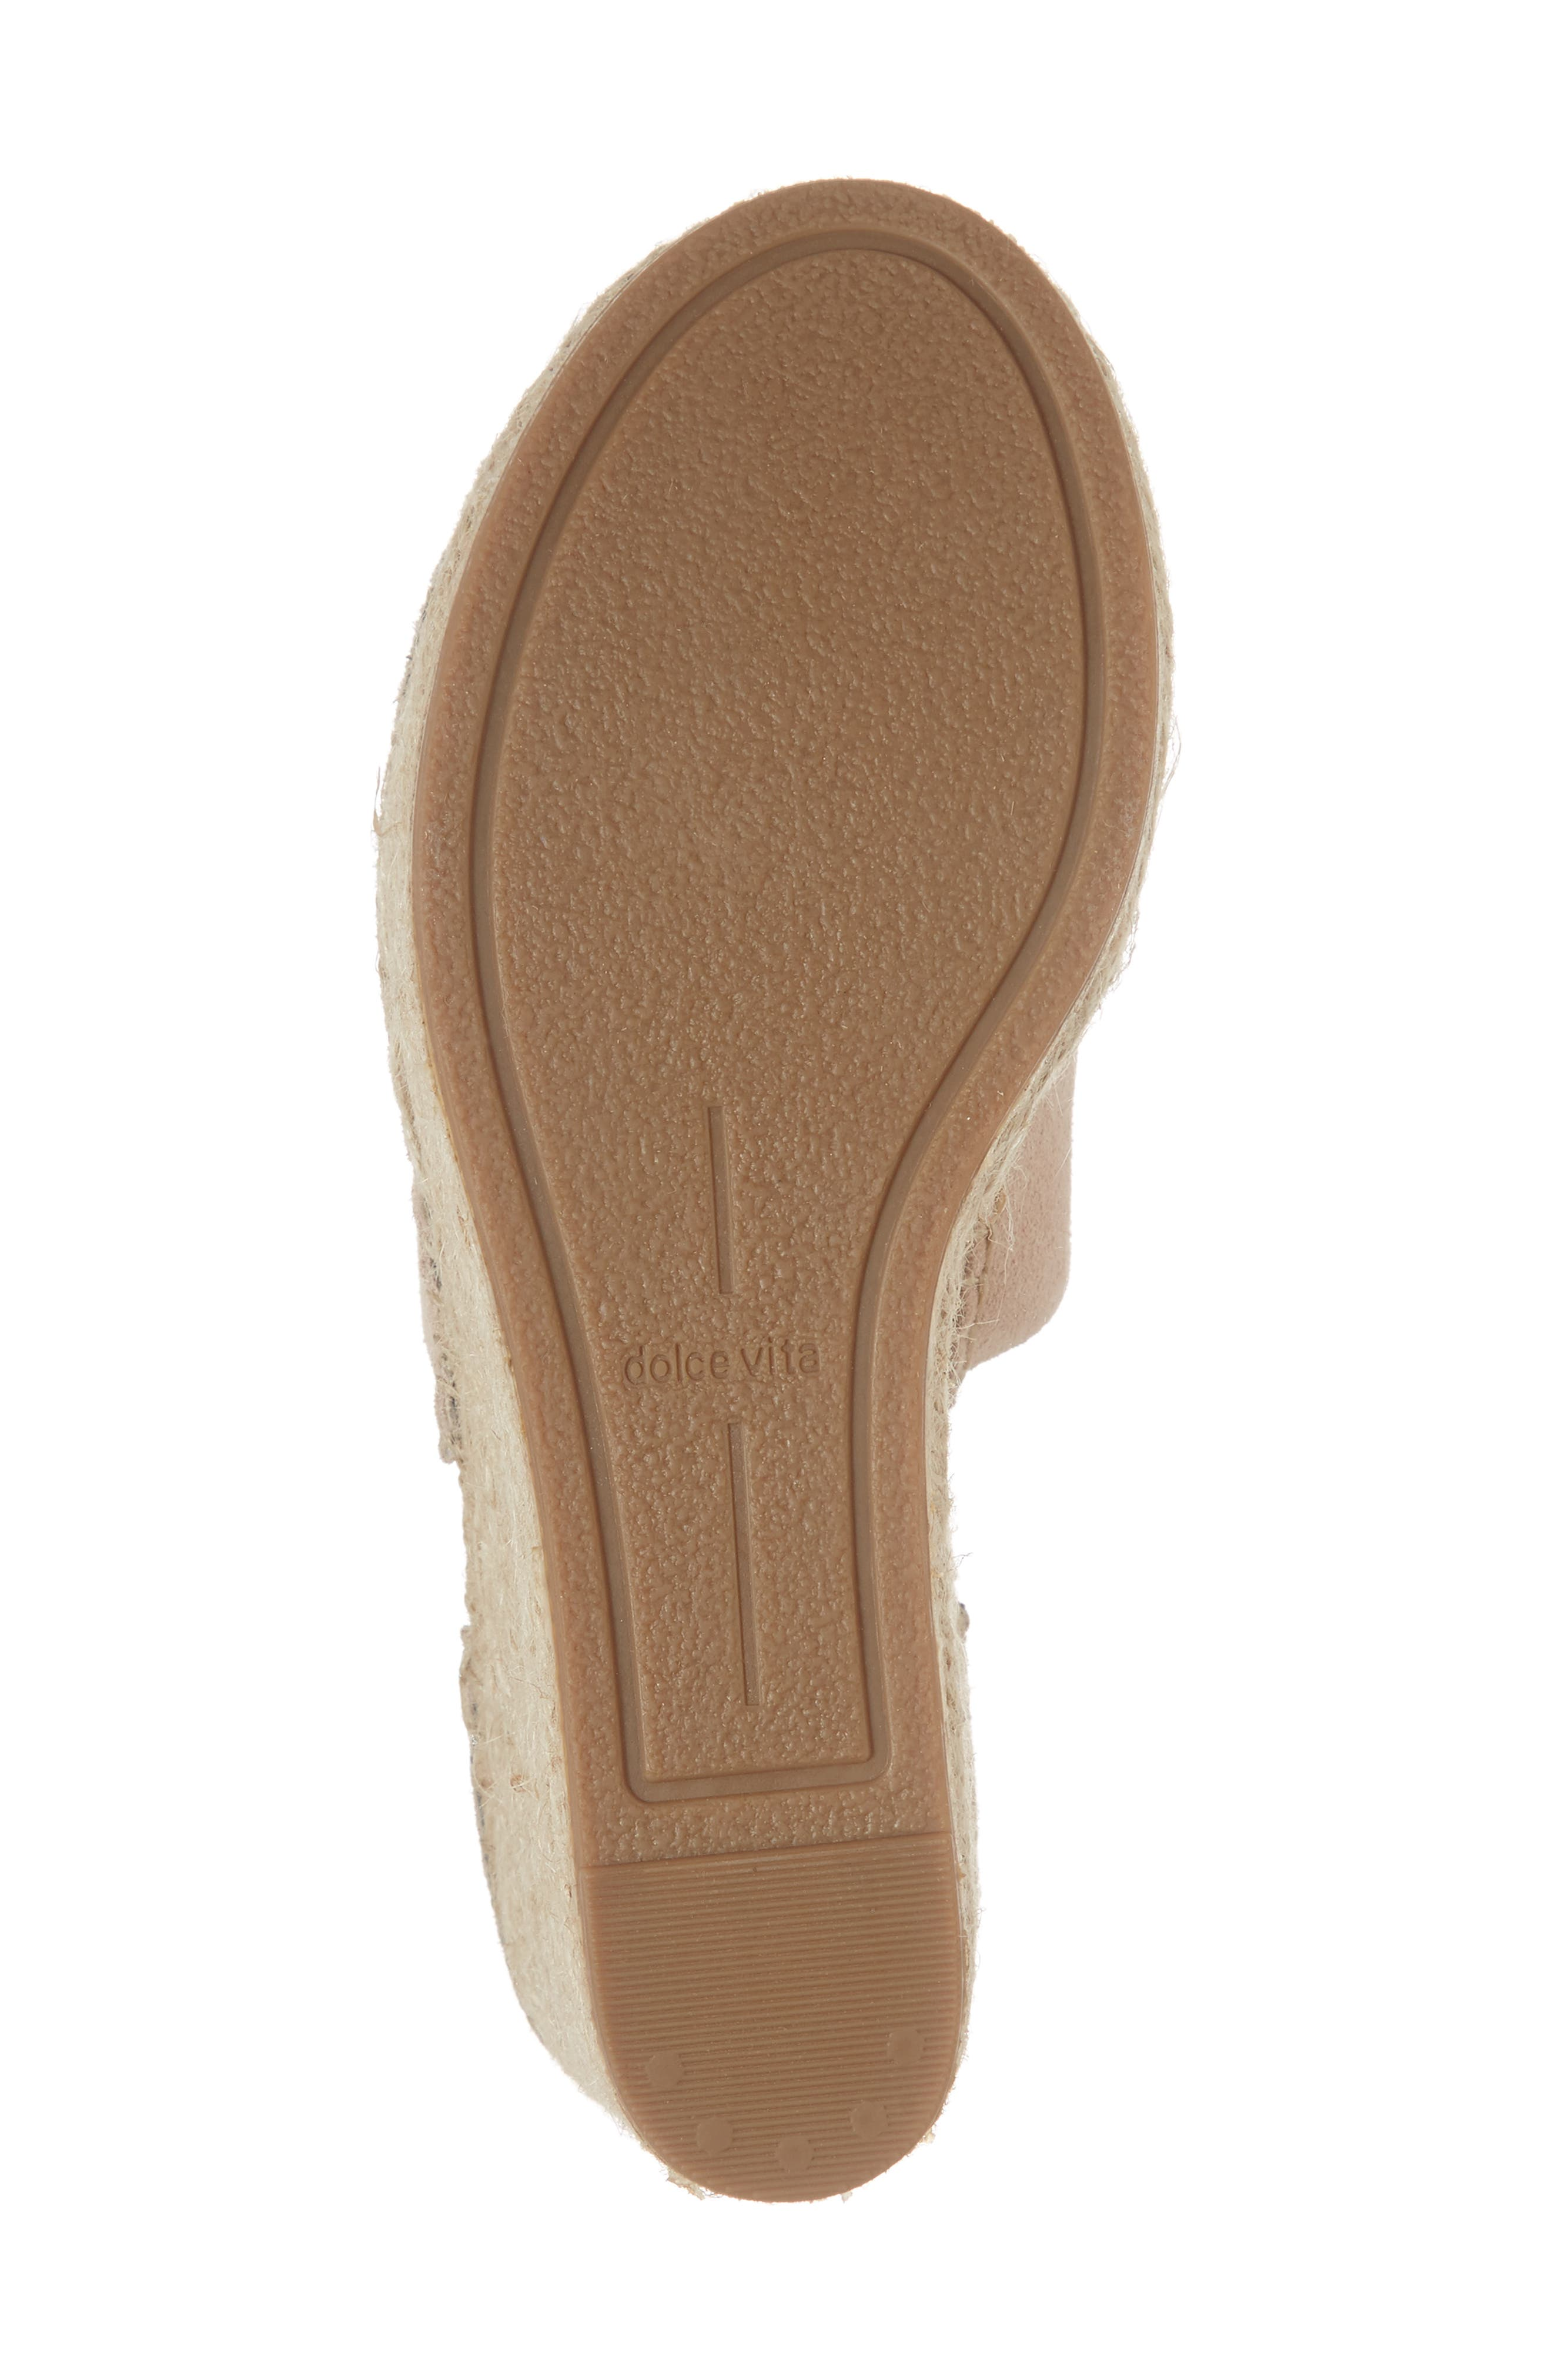 DOLCE VITA, Straw Wedge Espadrille Sandal, Alternate thumbnail 6, color, BLUSH